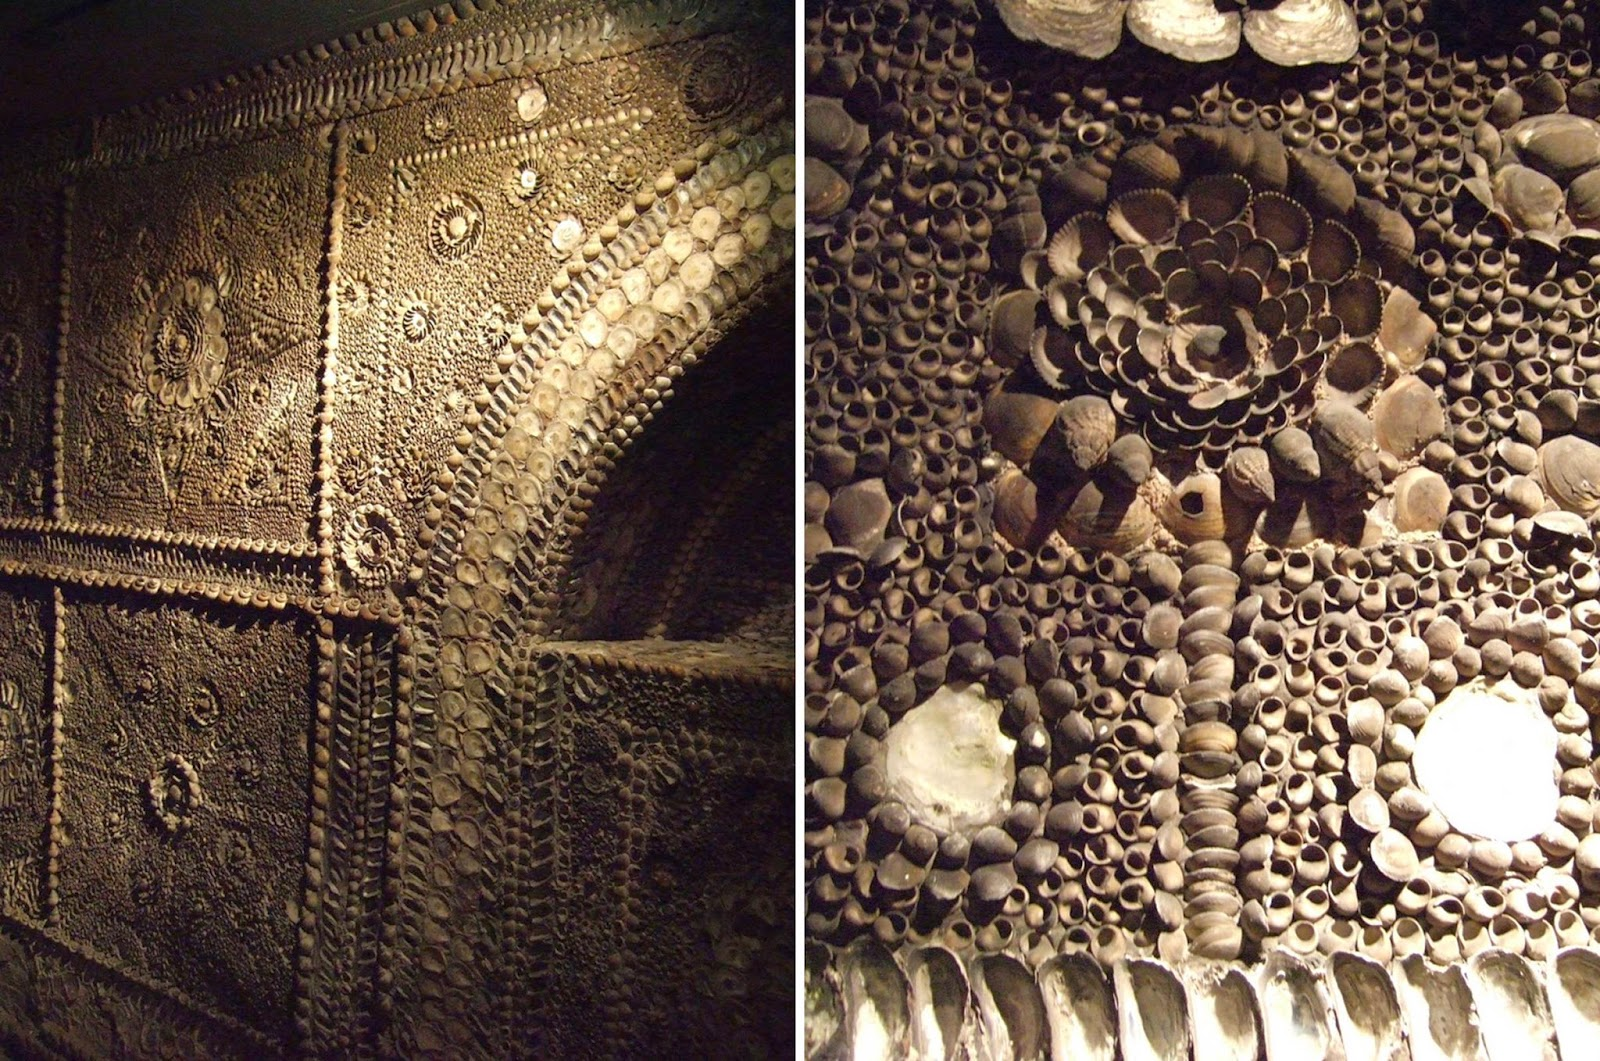 margate_shell_grotto_9.jpg